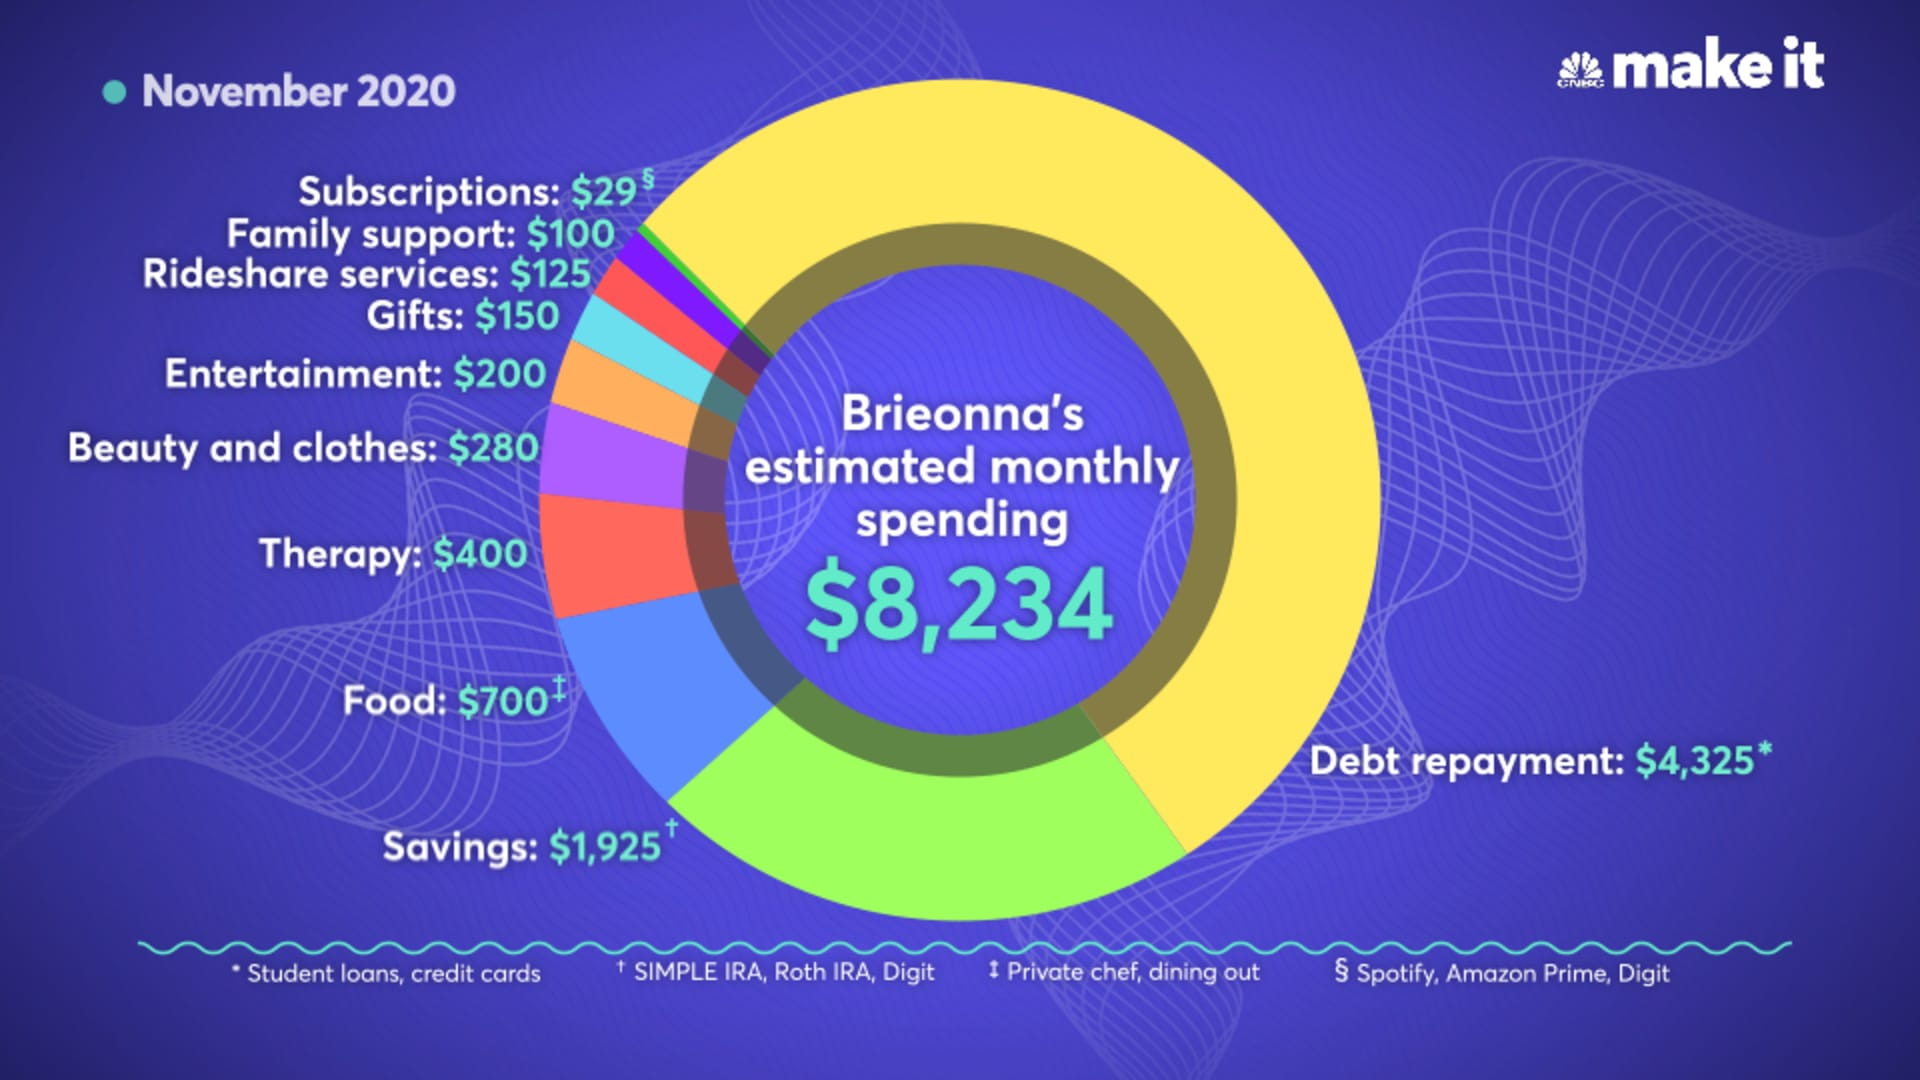 Brieonna Johnson's estimated monthly expenses for November 2020.